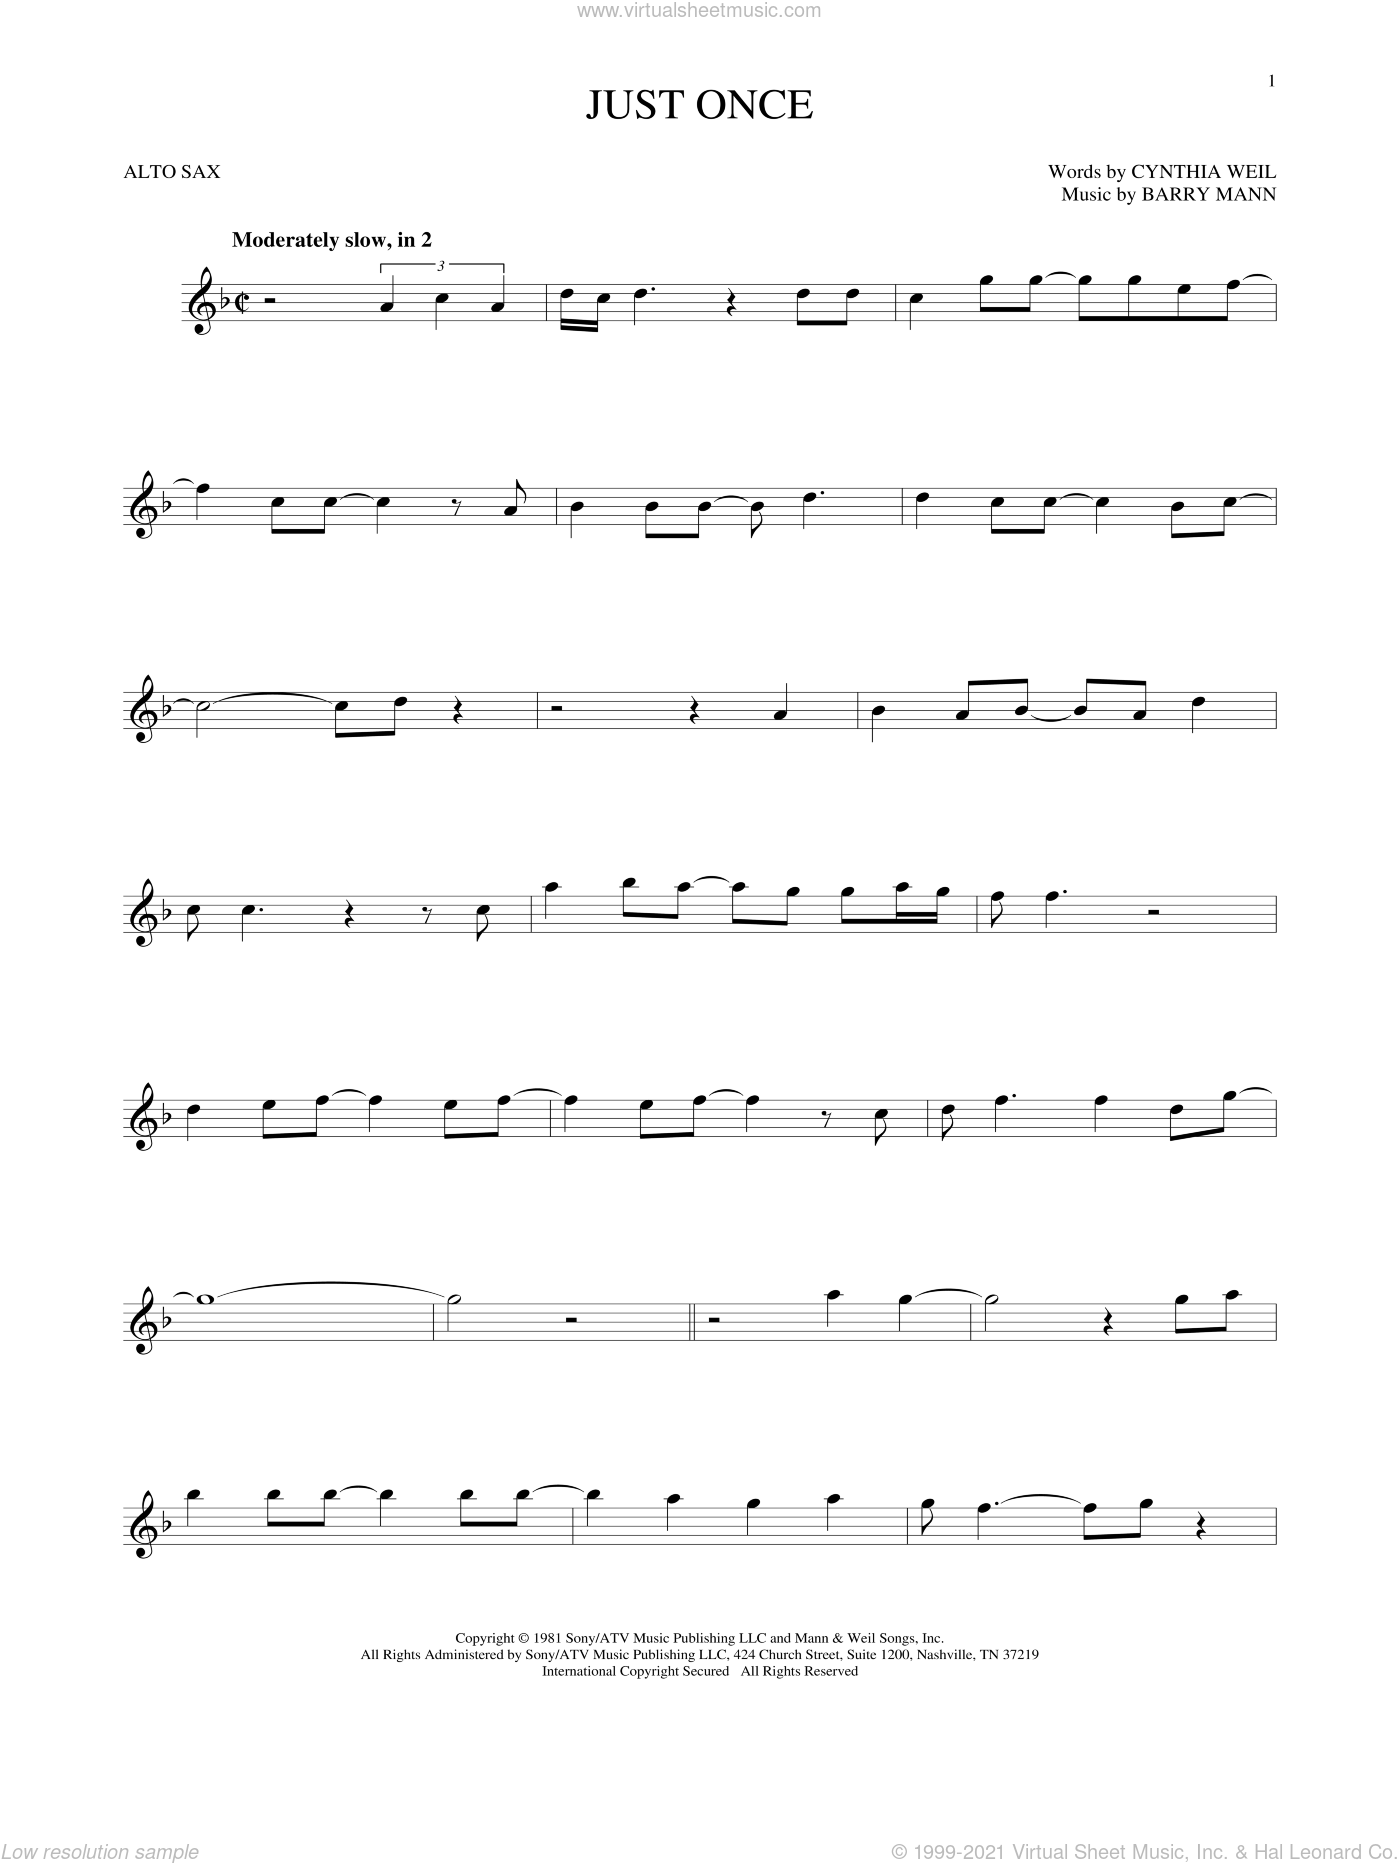 Just Once sheet music for alto saxophone solo by Quincy Jones featuring James Ingram, Barry Mann and Cynthia Weil, intermediate skill level